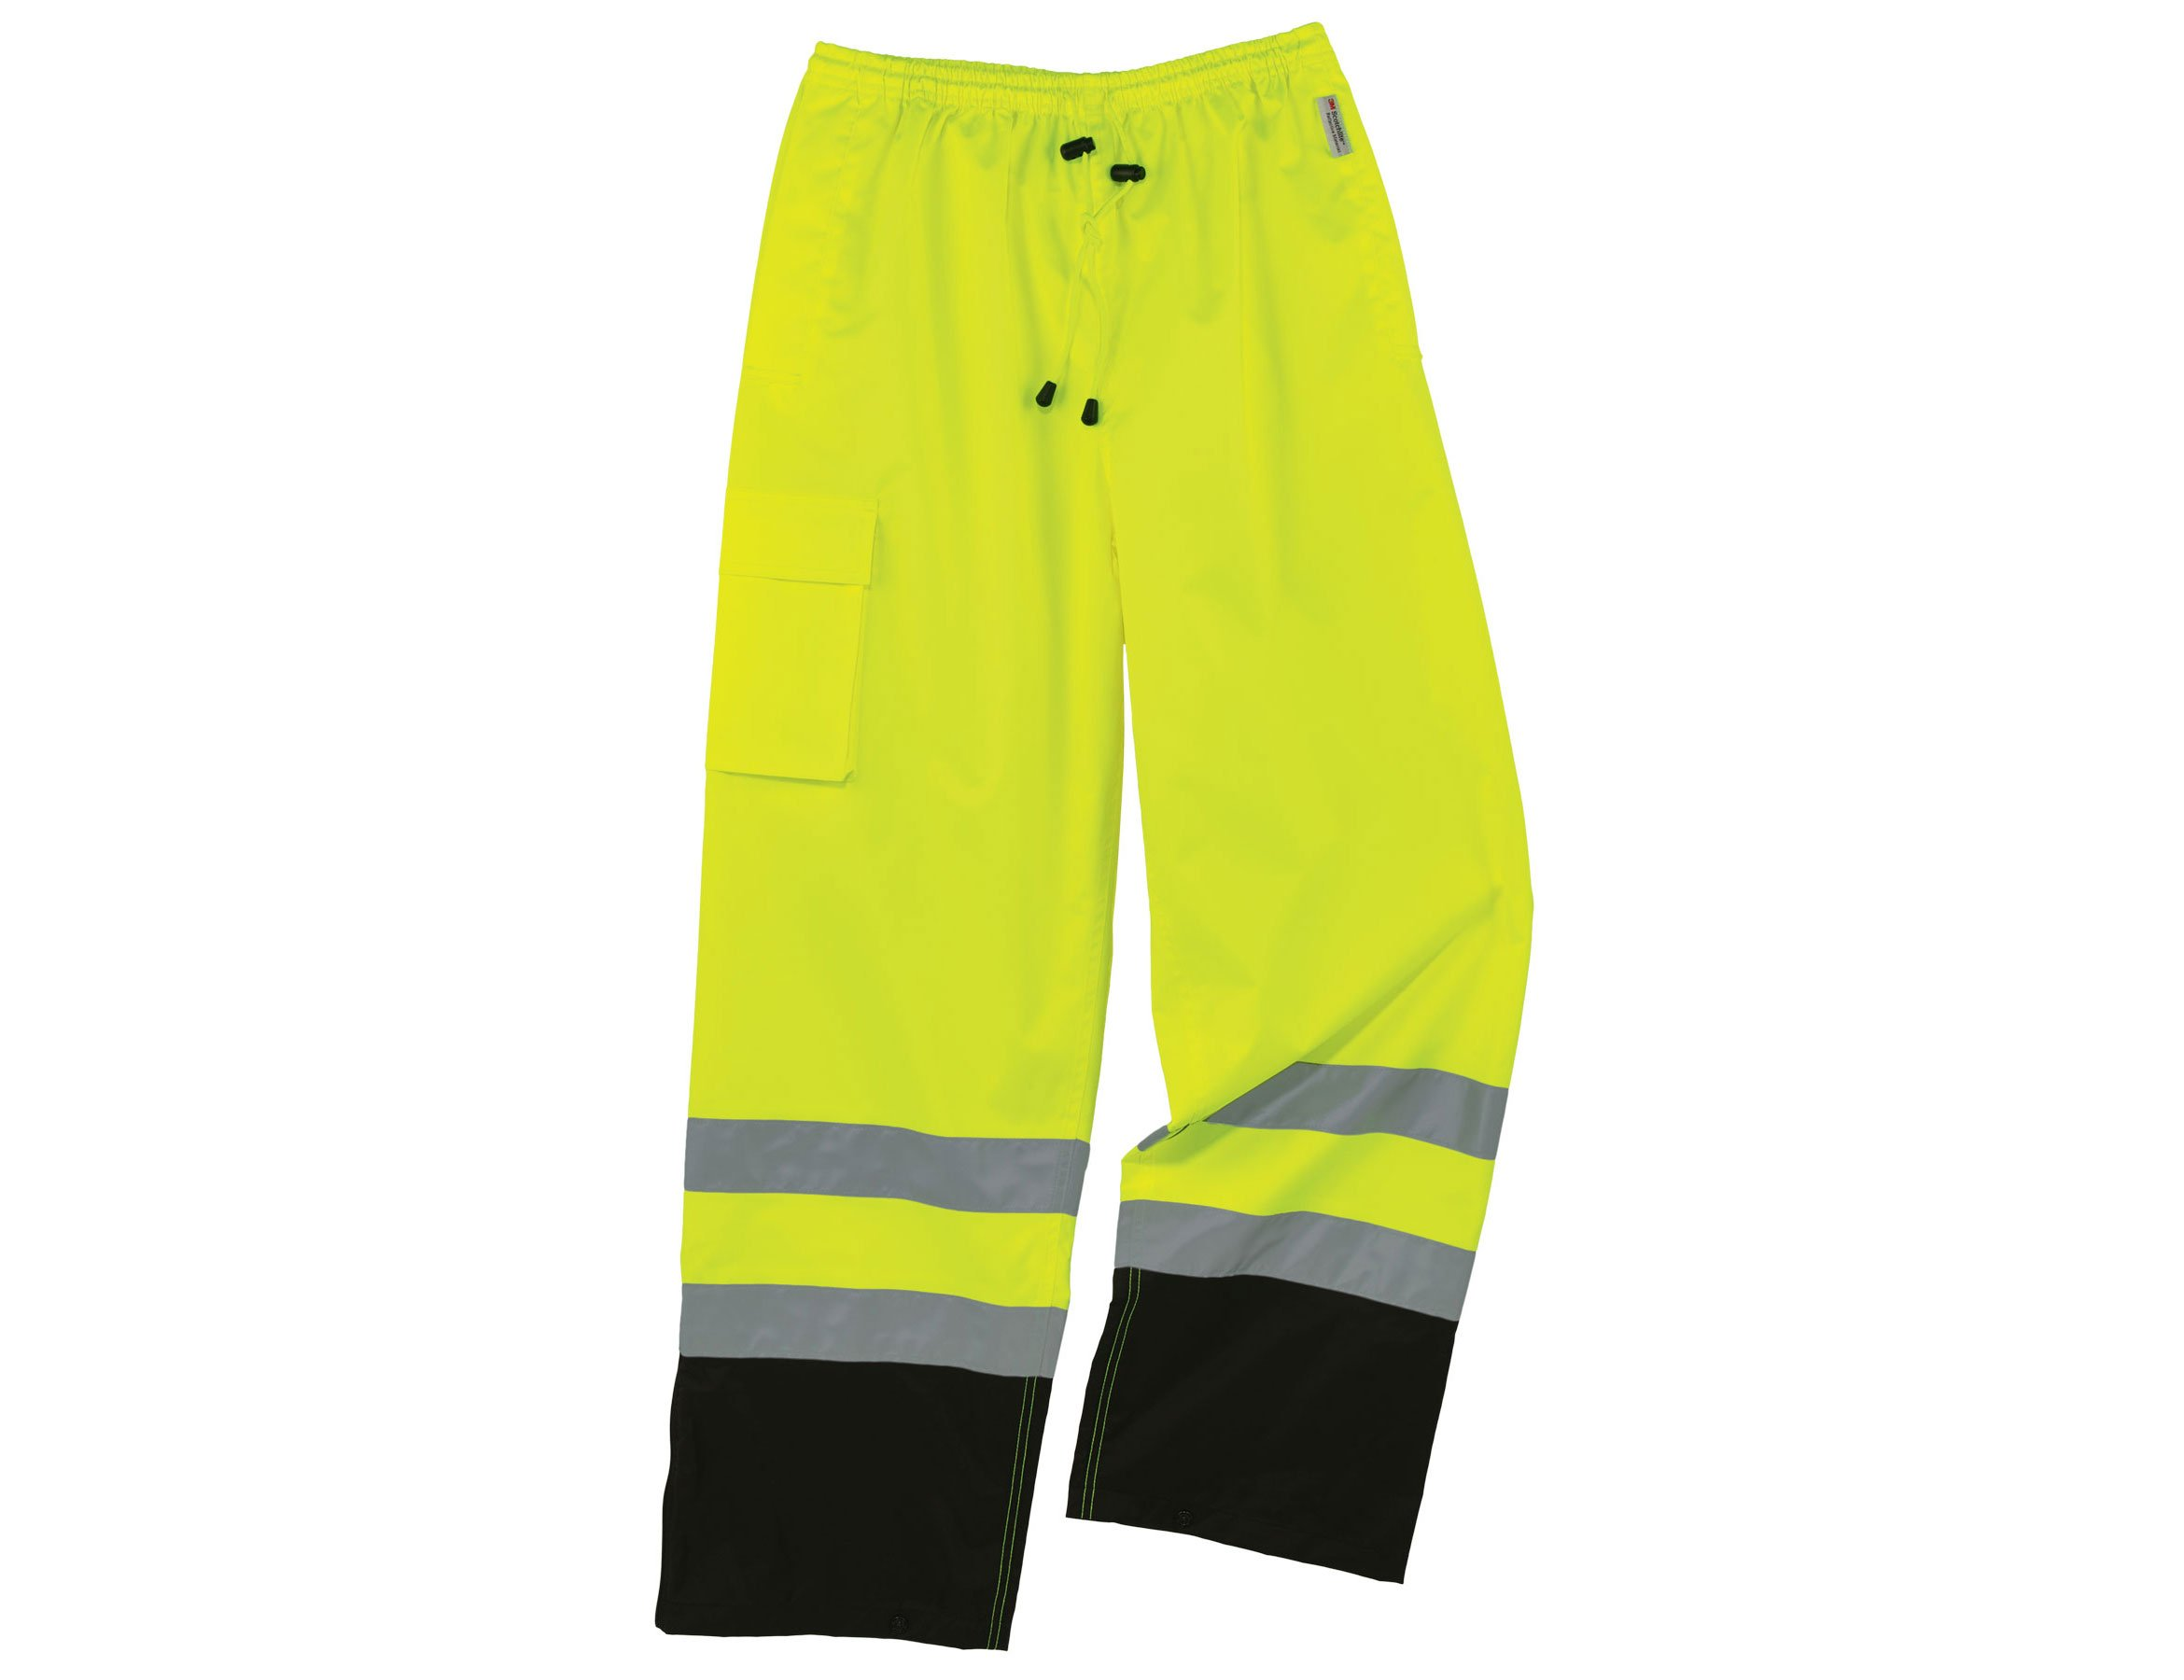 Ergodyne GloWear 8915BK ANSI Black Bottom High Visibility Lime Safety Rain Pants, 5XL